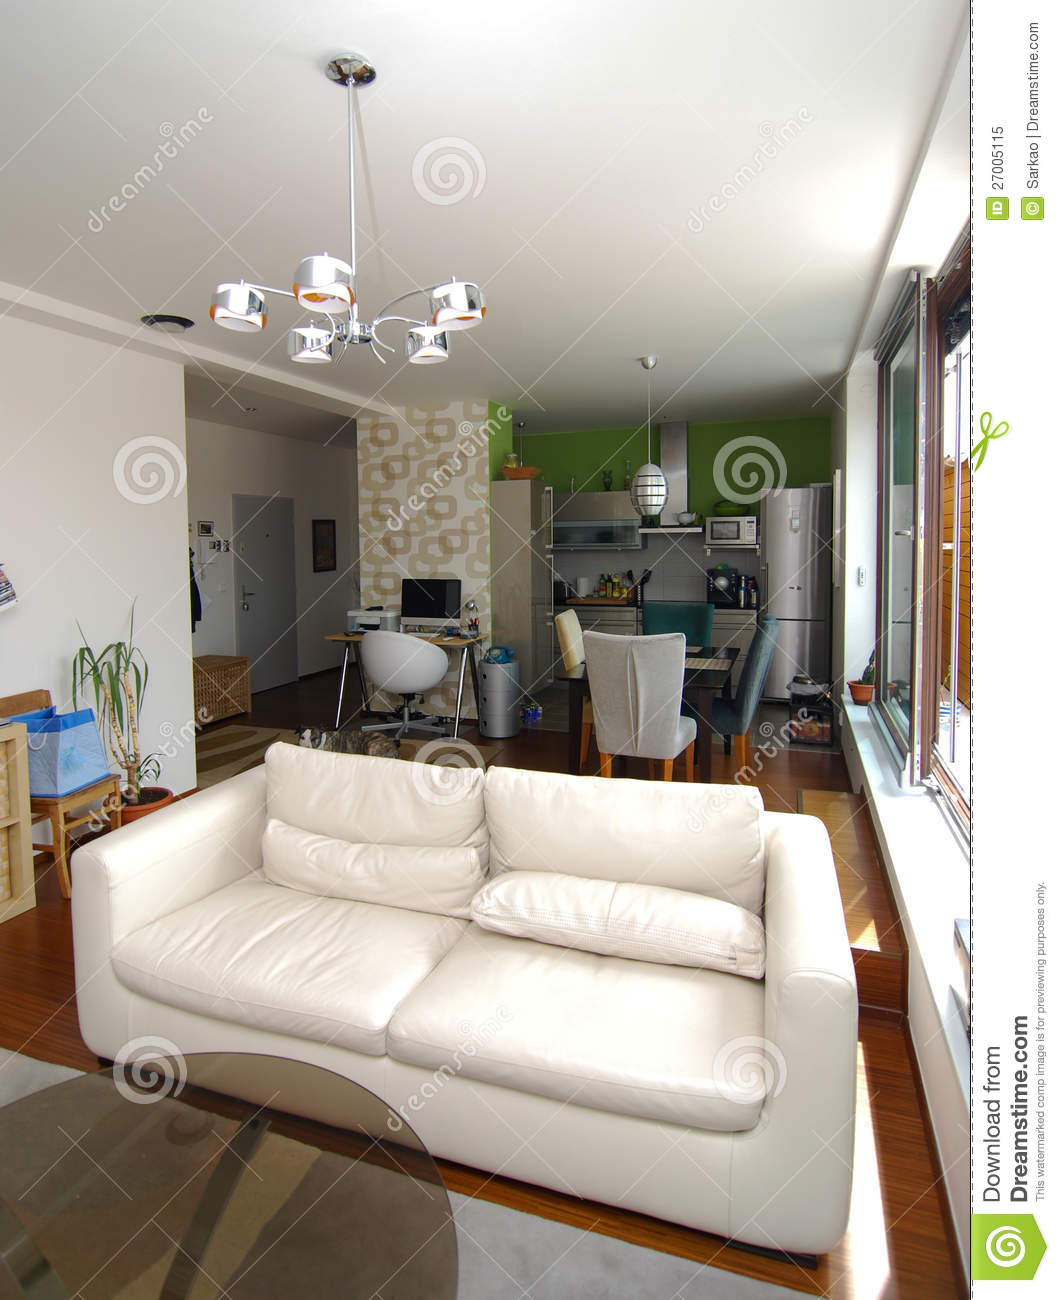 Small flat royalty free stock photo image 27005115 for Small flat interior